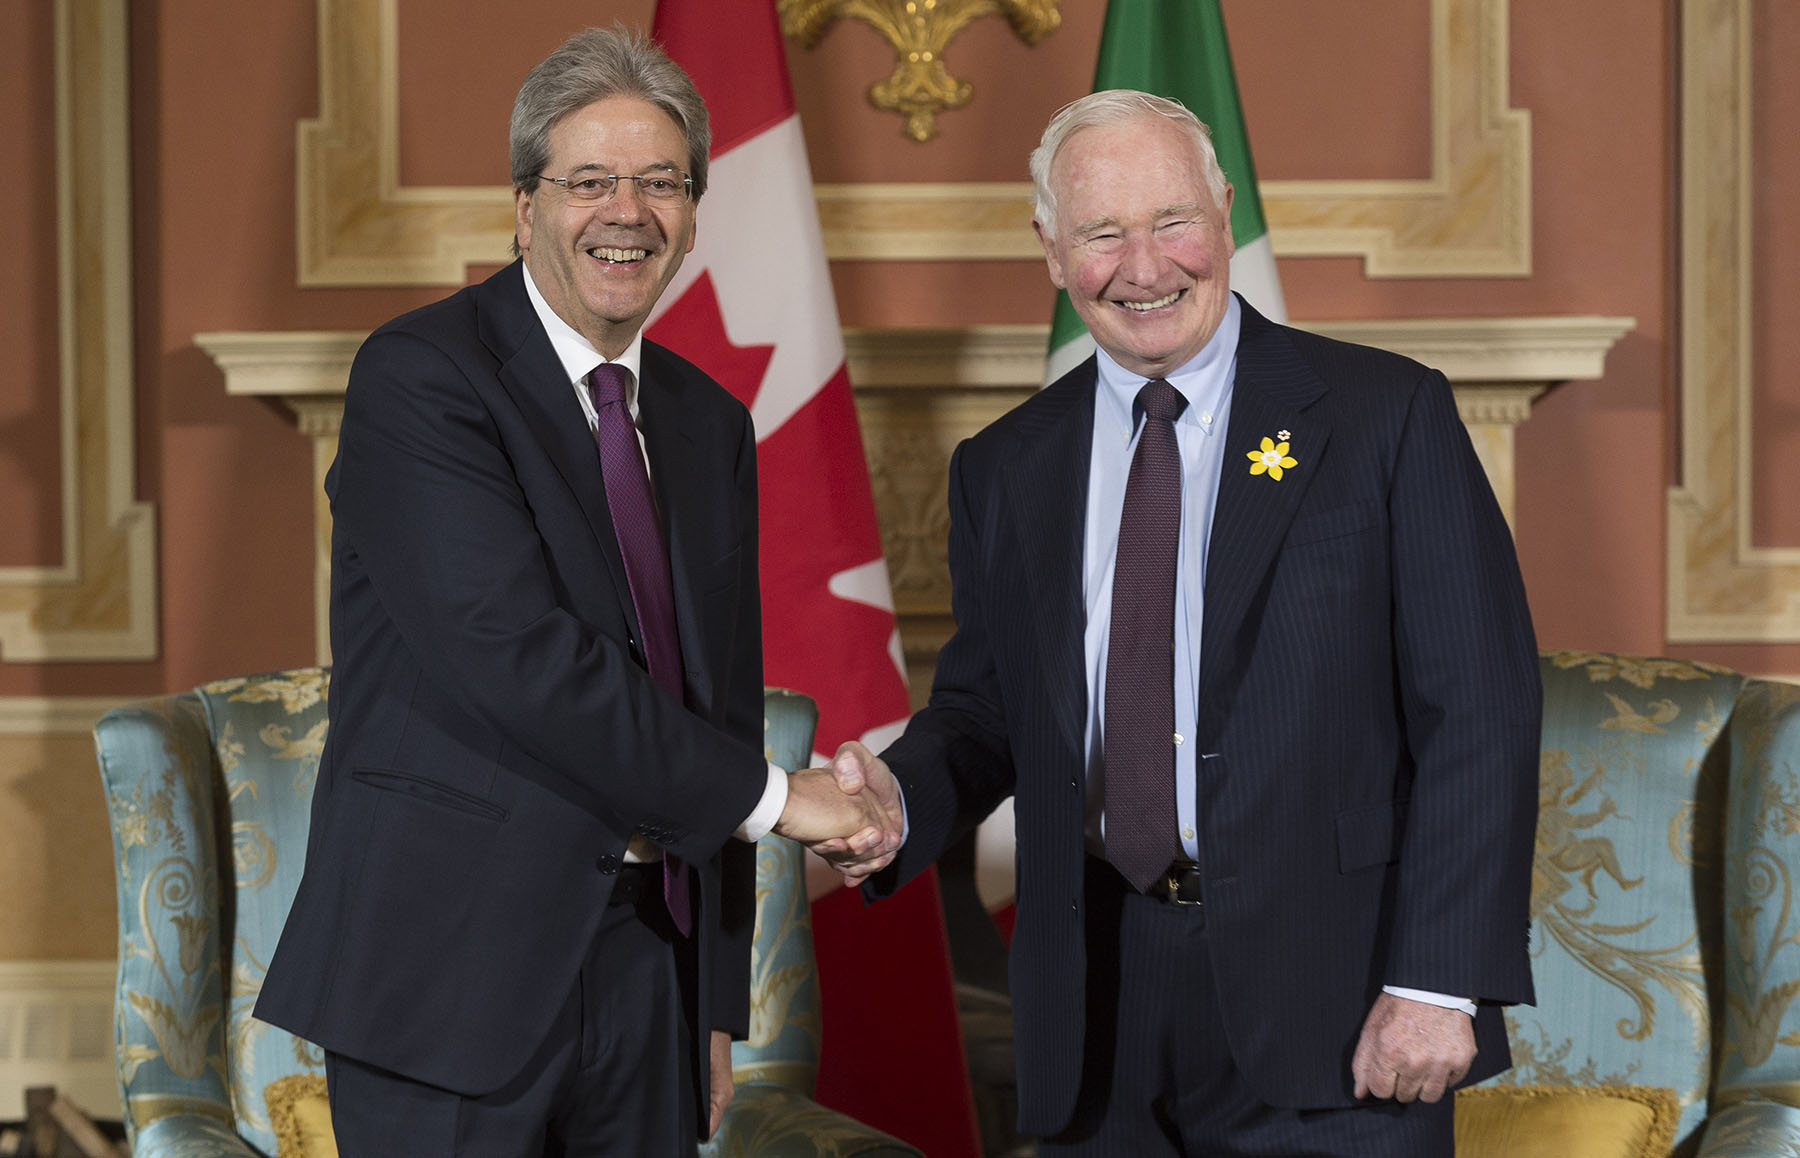 Prime Minister Gentiloni was in Canada on April 20 and 21, 2017.